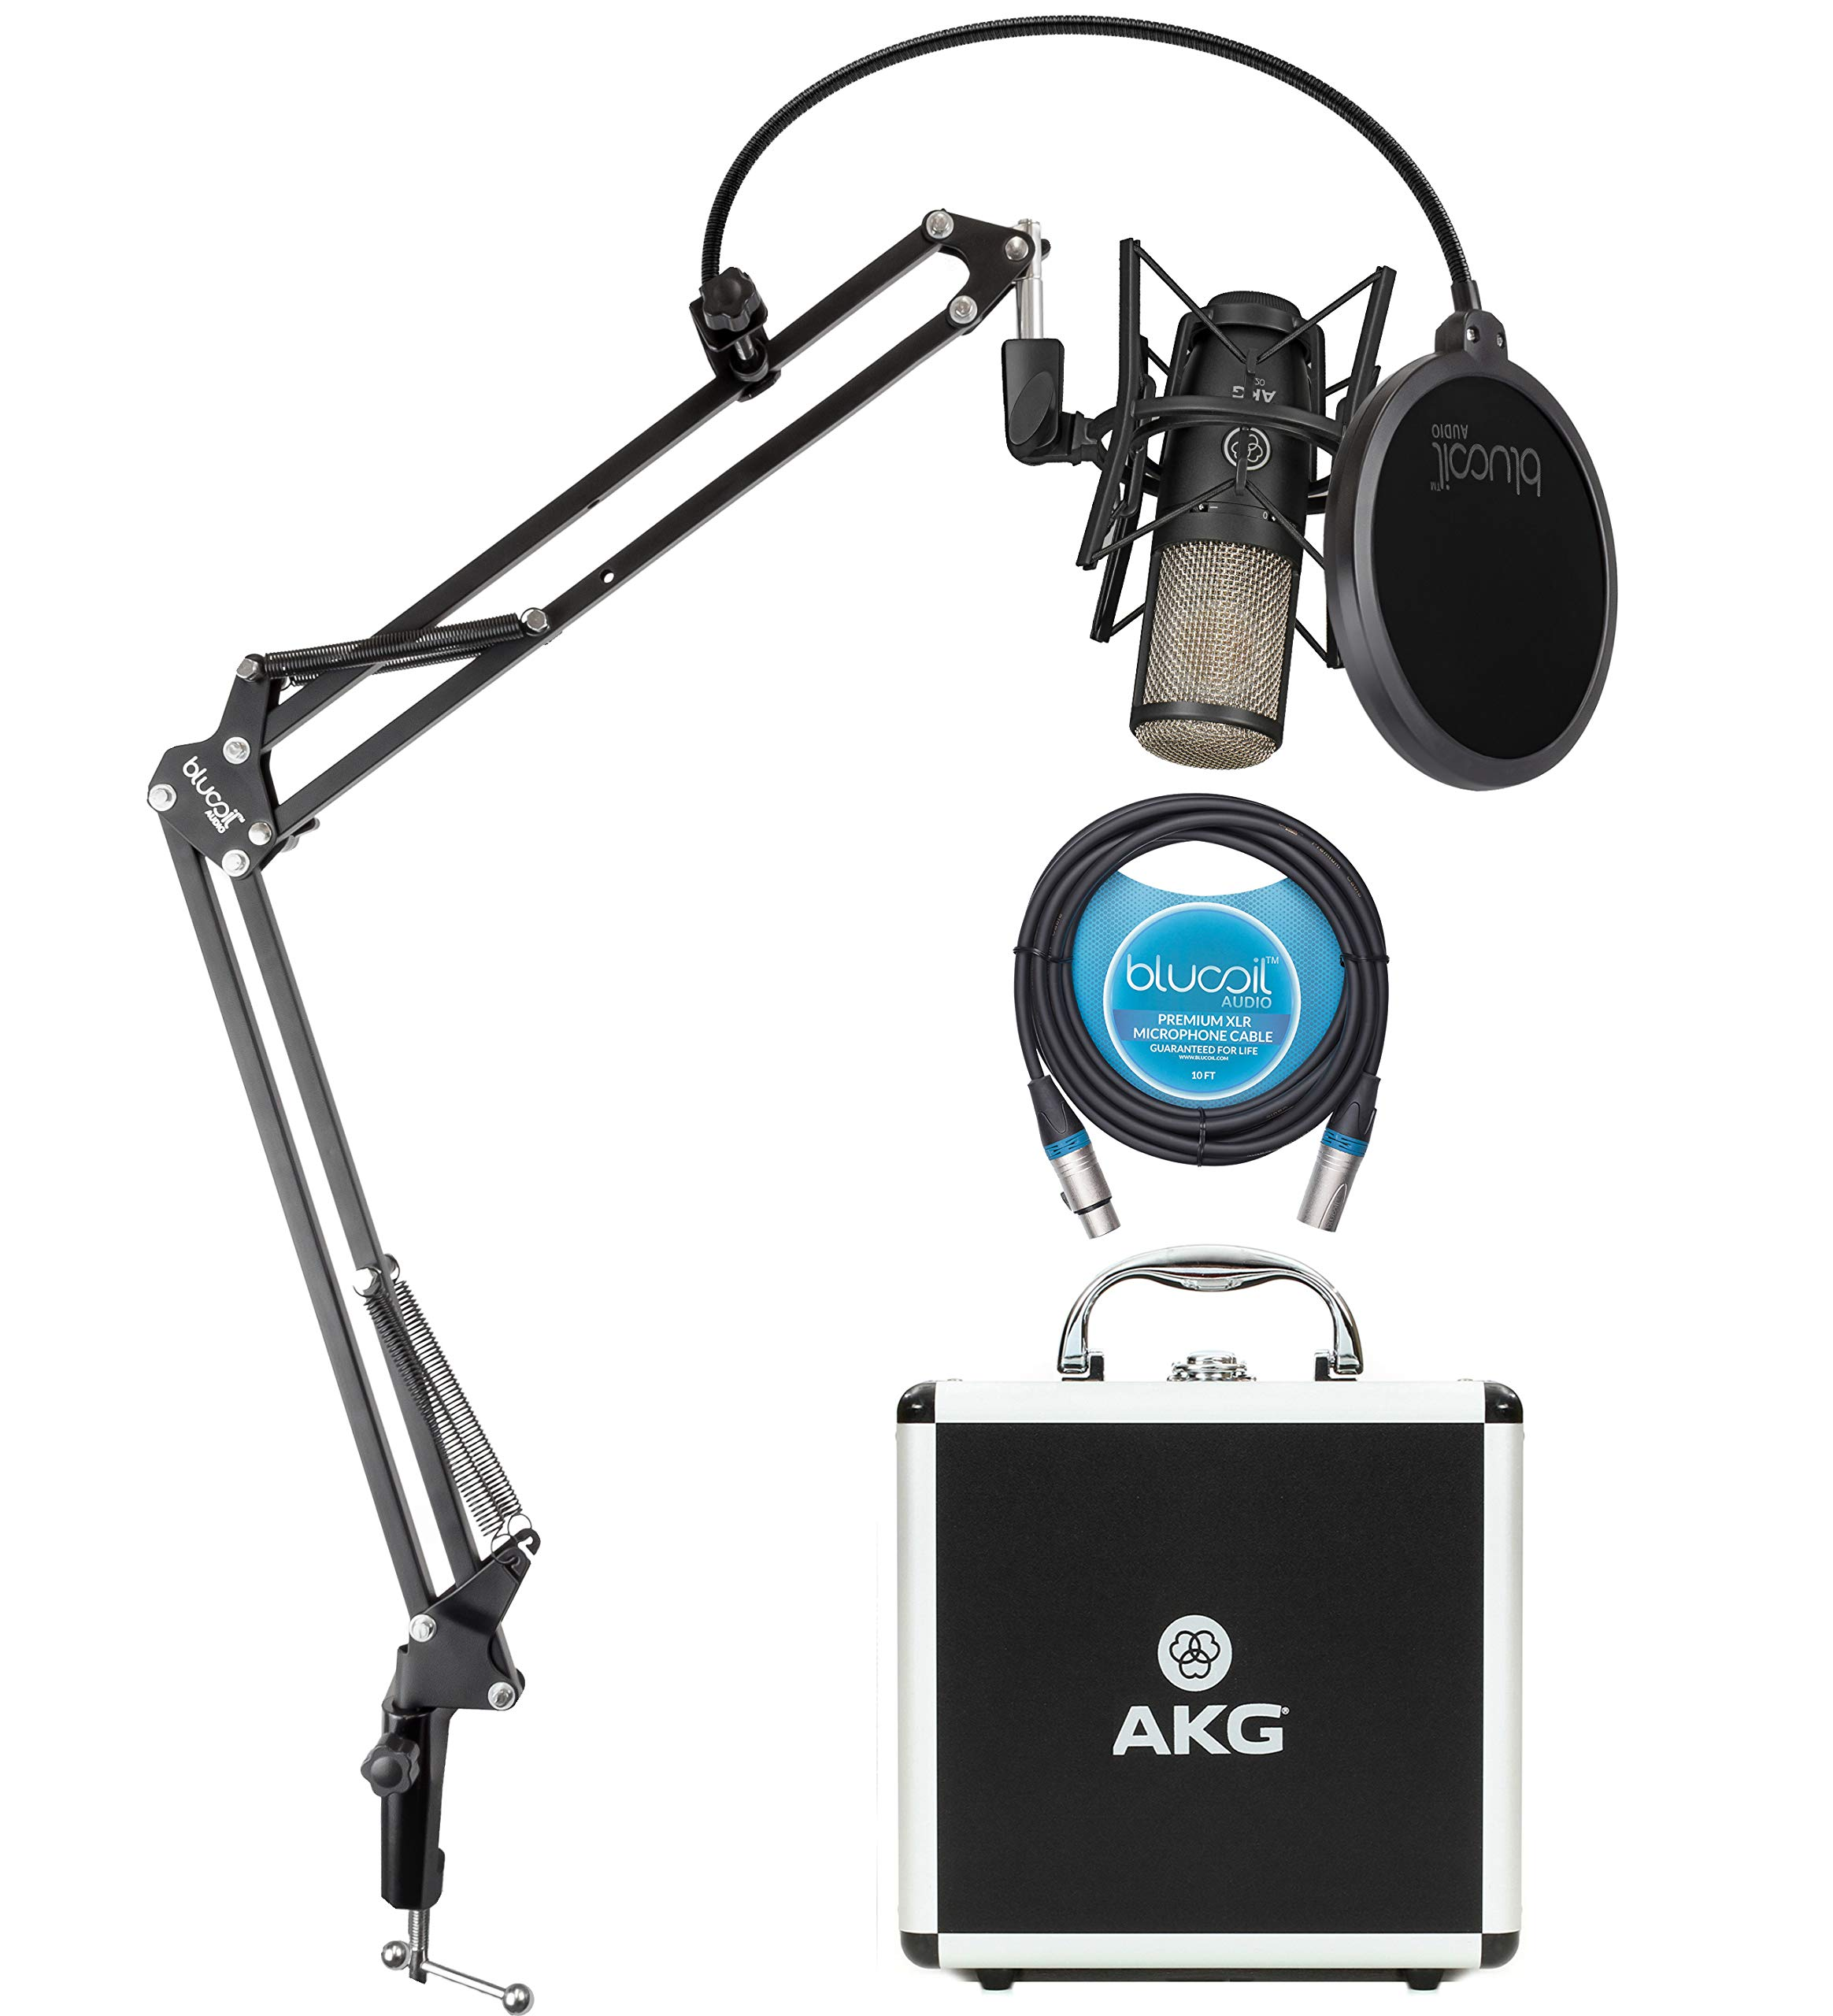 AKG P220 Cardioid Condenser Microphone for Vocals, Pianos, Horns, Woodwind and String Instruments Bundle with Blucoil 10-FT Balanced XLR Cable, and Boom Arm Plus Pop Filter